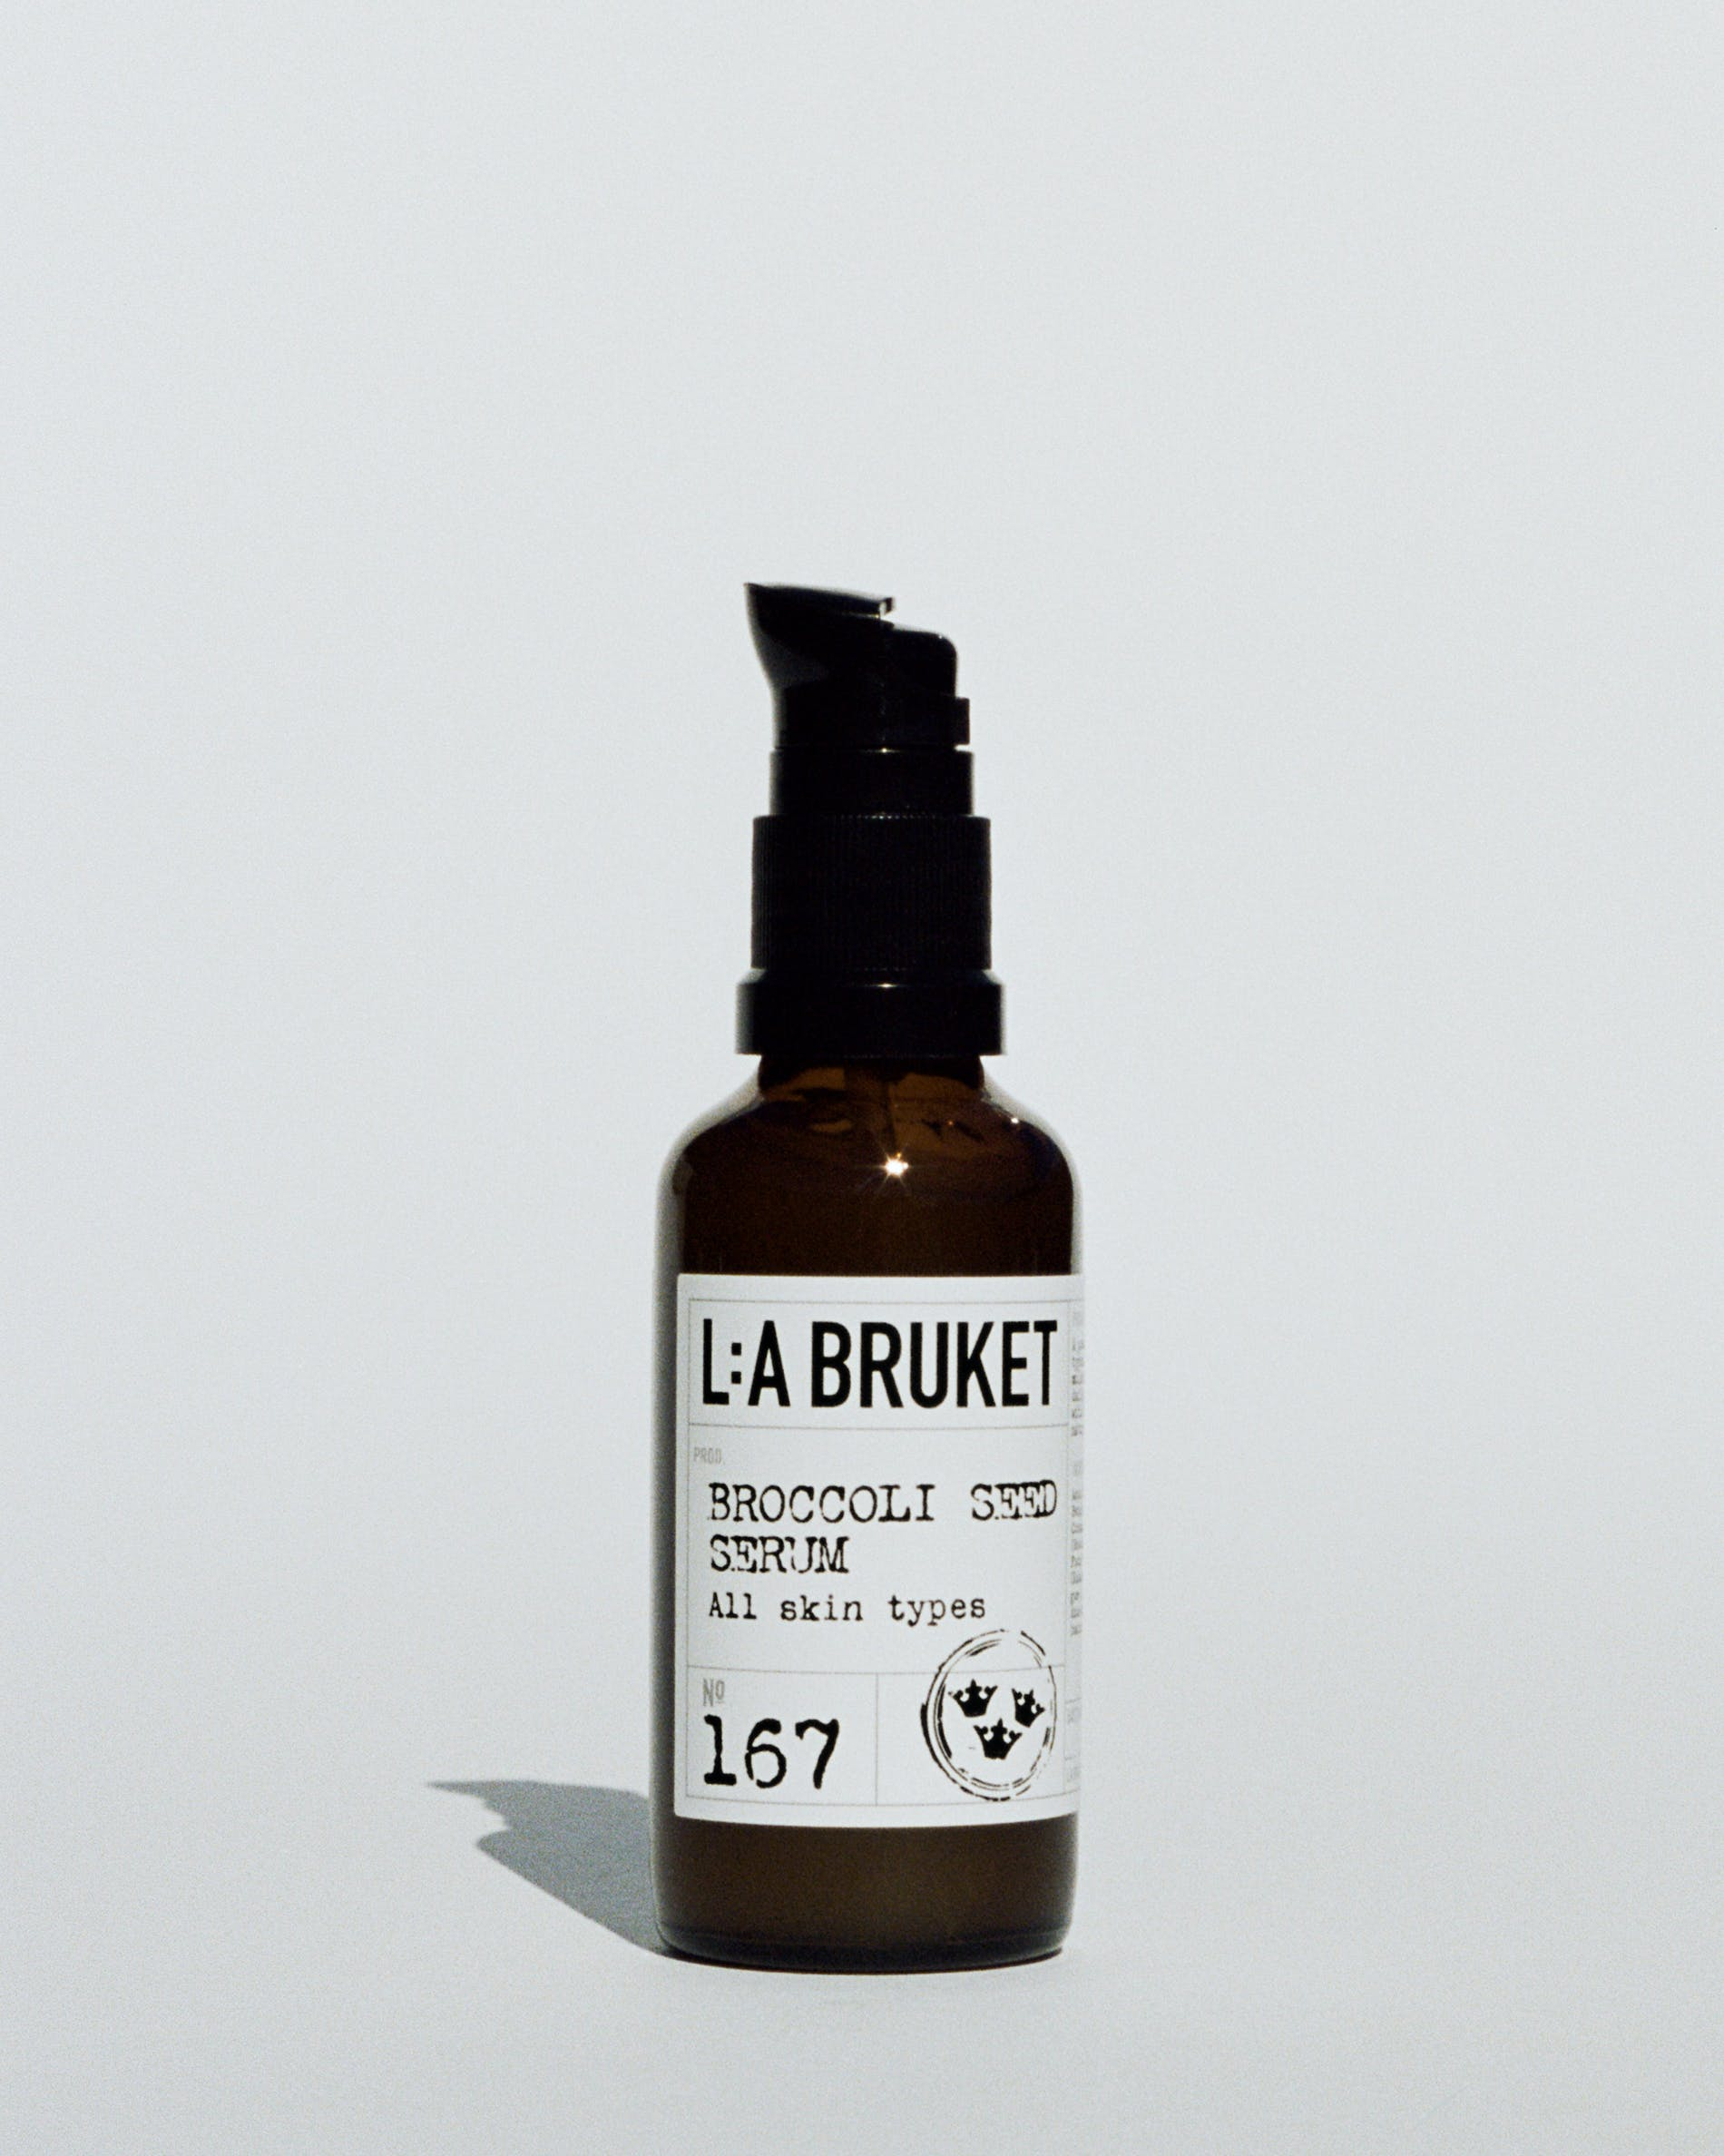 Broccoli seed serum